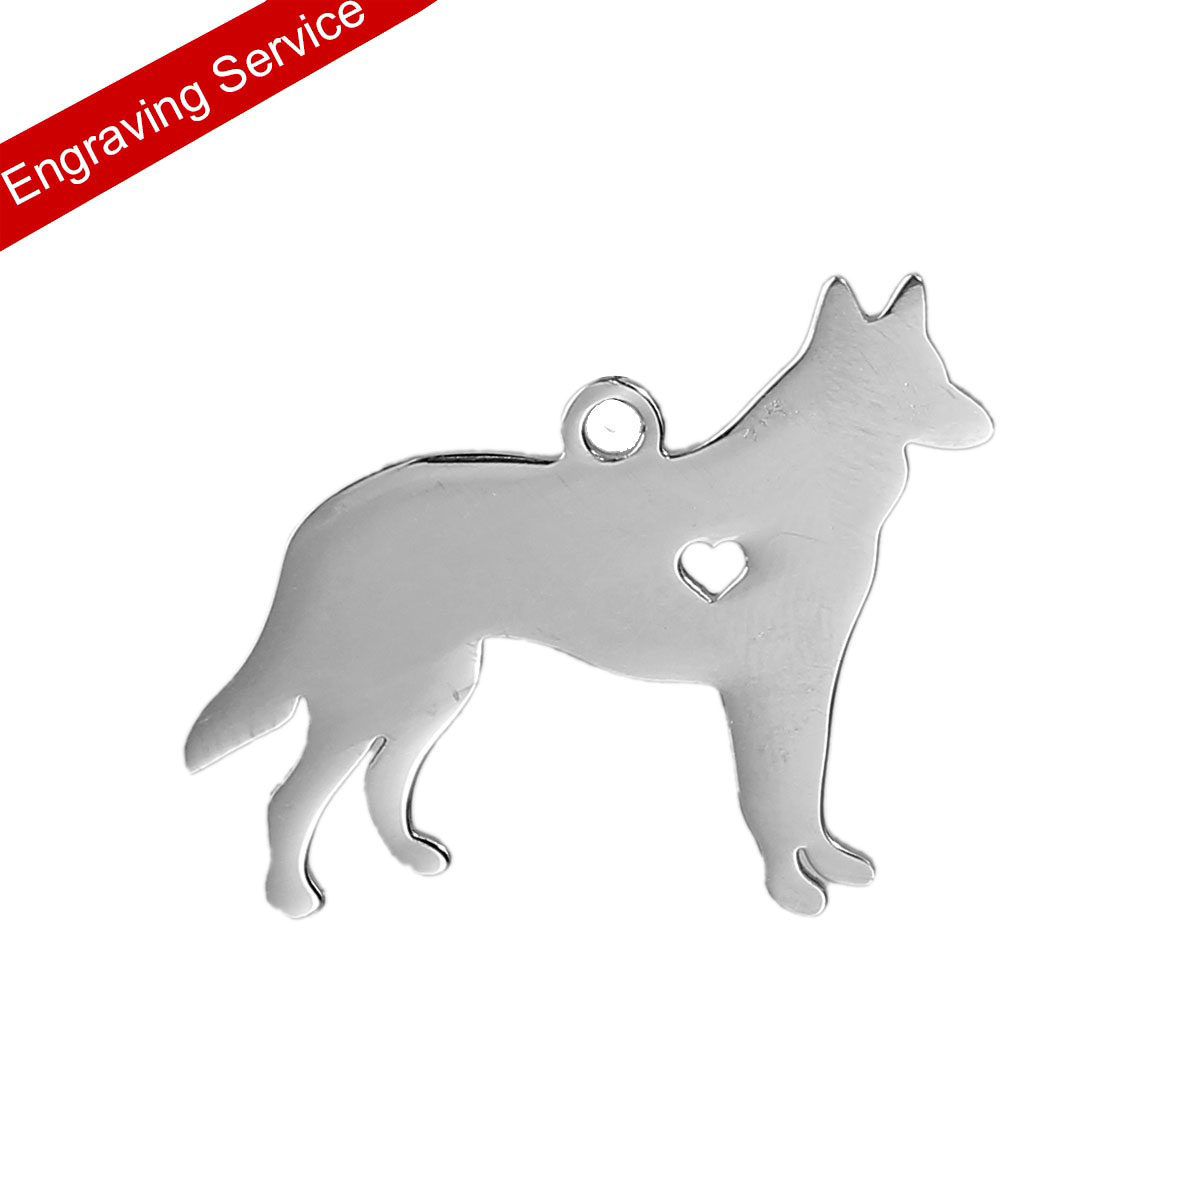 DoreenBeads Stainless Steel Engraving Text Pet Dog Tags Blank Stamping Pendant German Shepherd Animal Dog Has My Heart 3 x 2.3cm